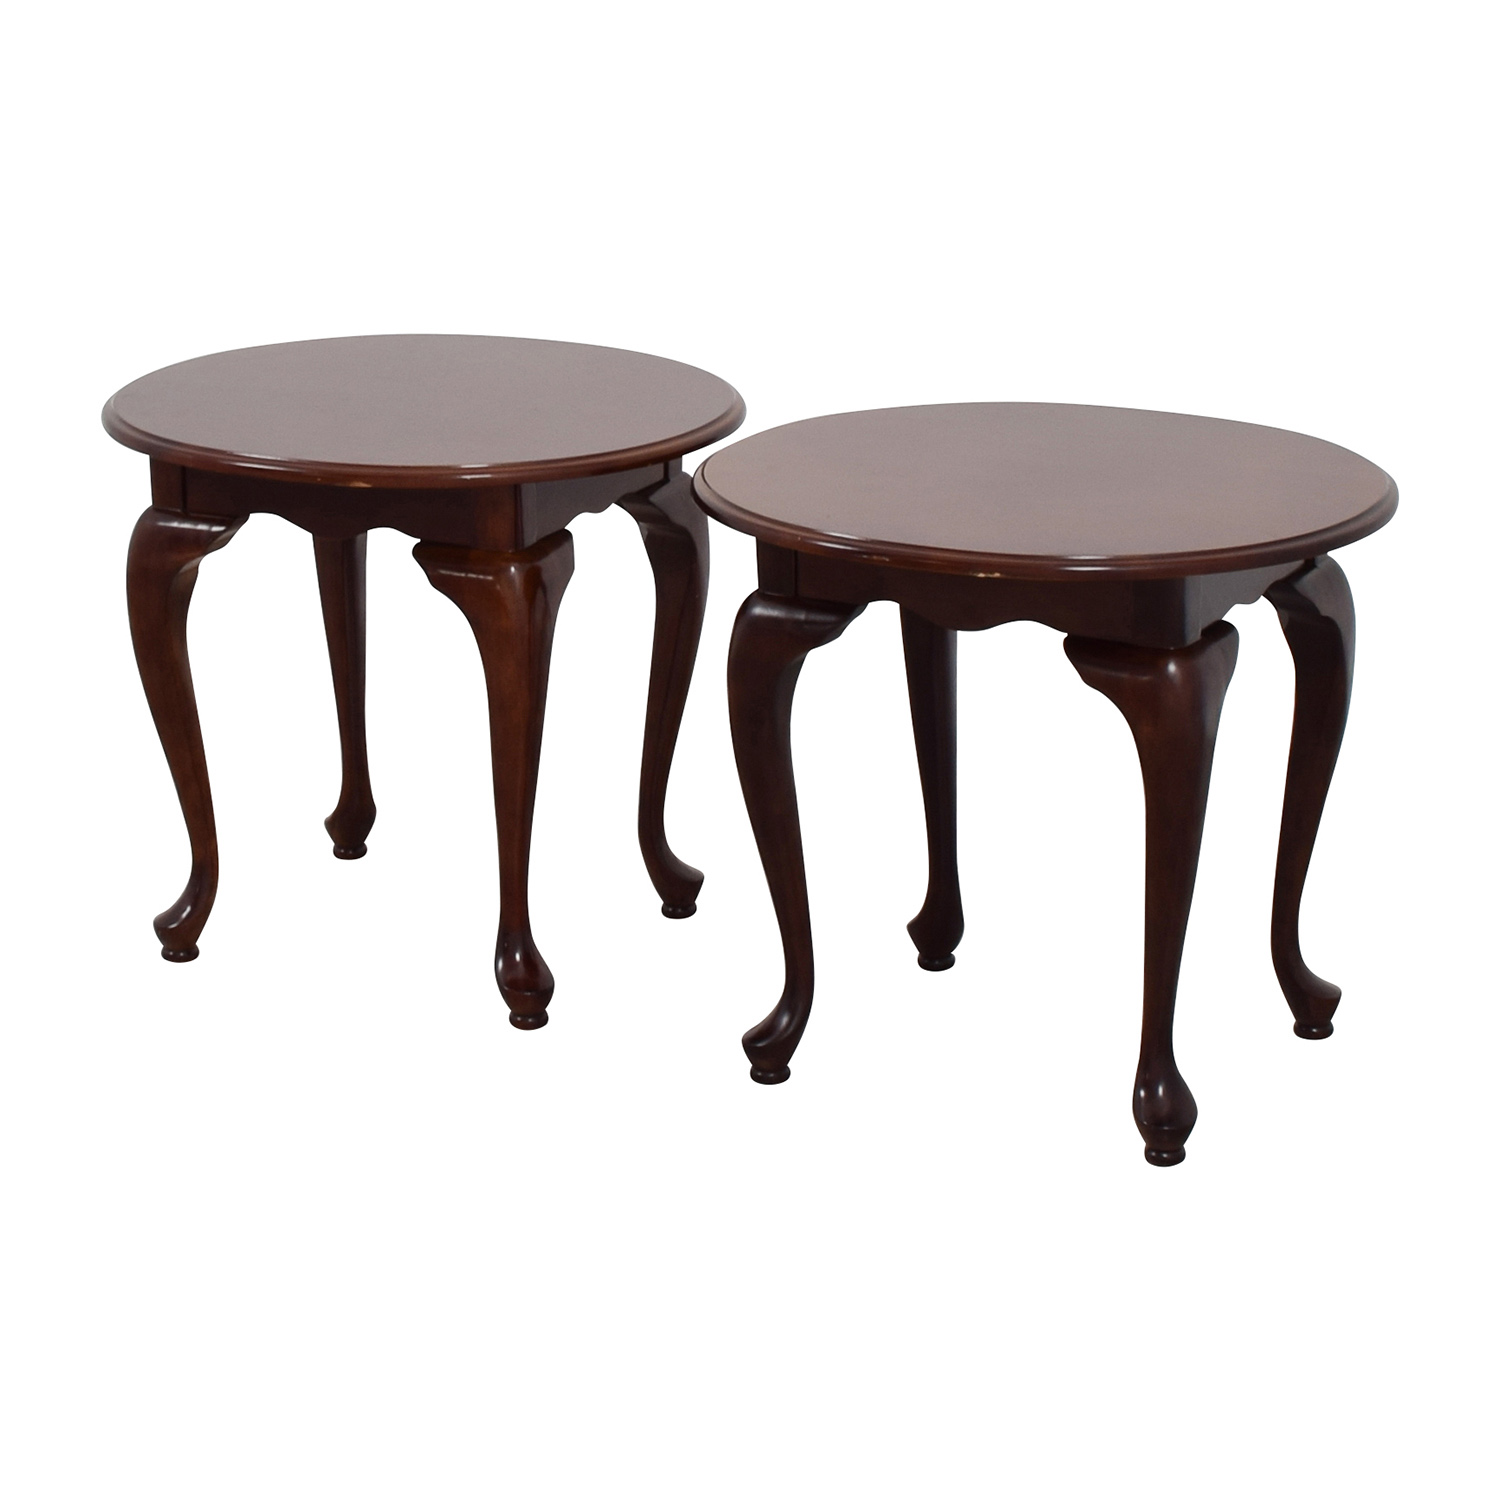 Used Ethan Allen Coffee Tables: Ethan Allen Ethan Allen Heirloom Round Lamp